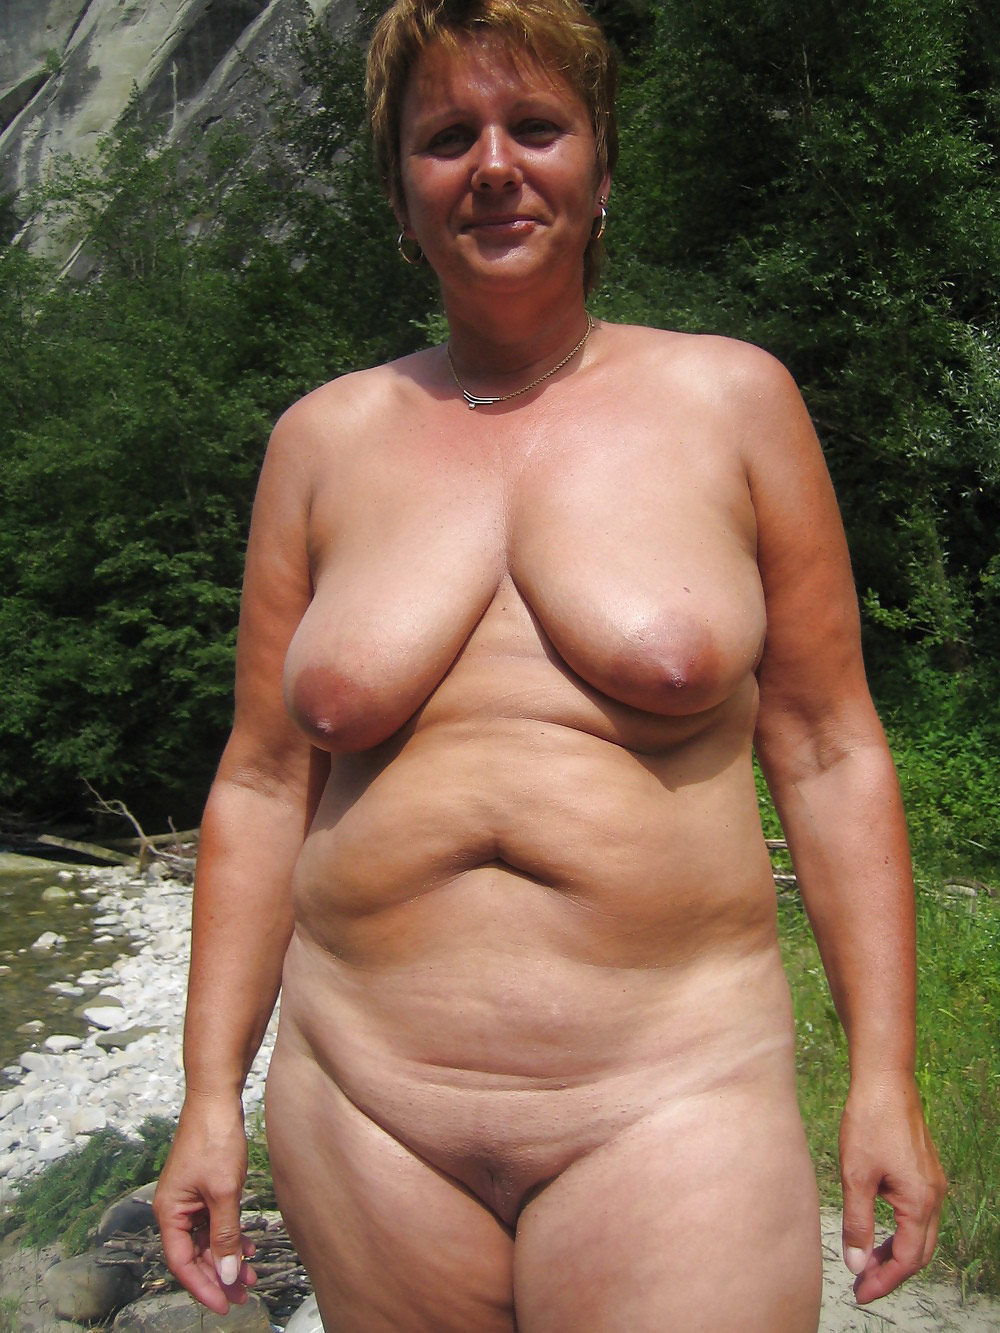 Apologise, but, Mature bbw nudist pics think